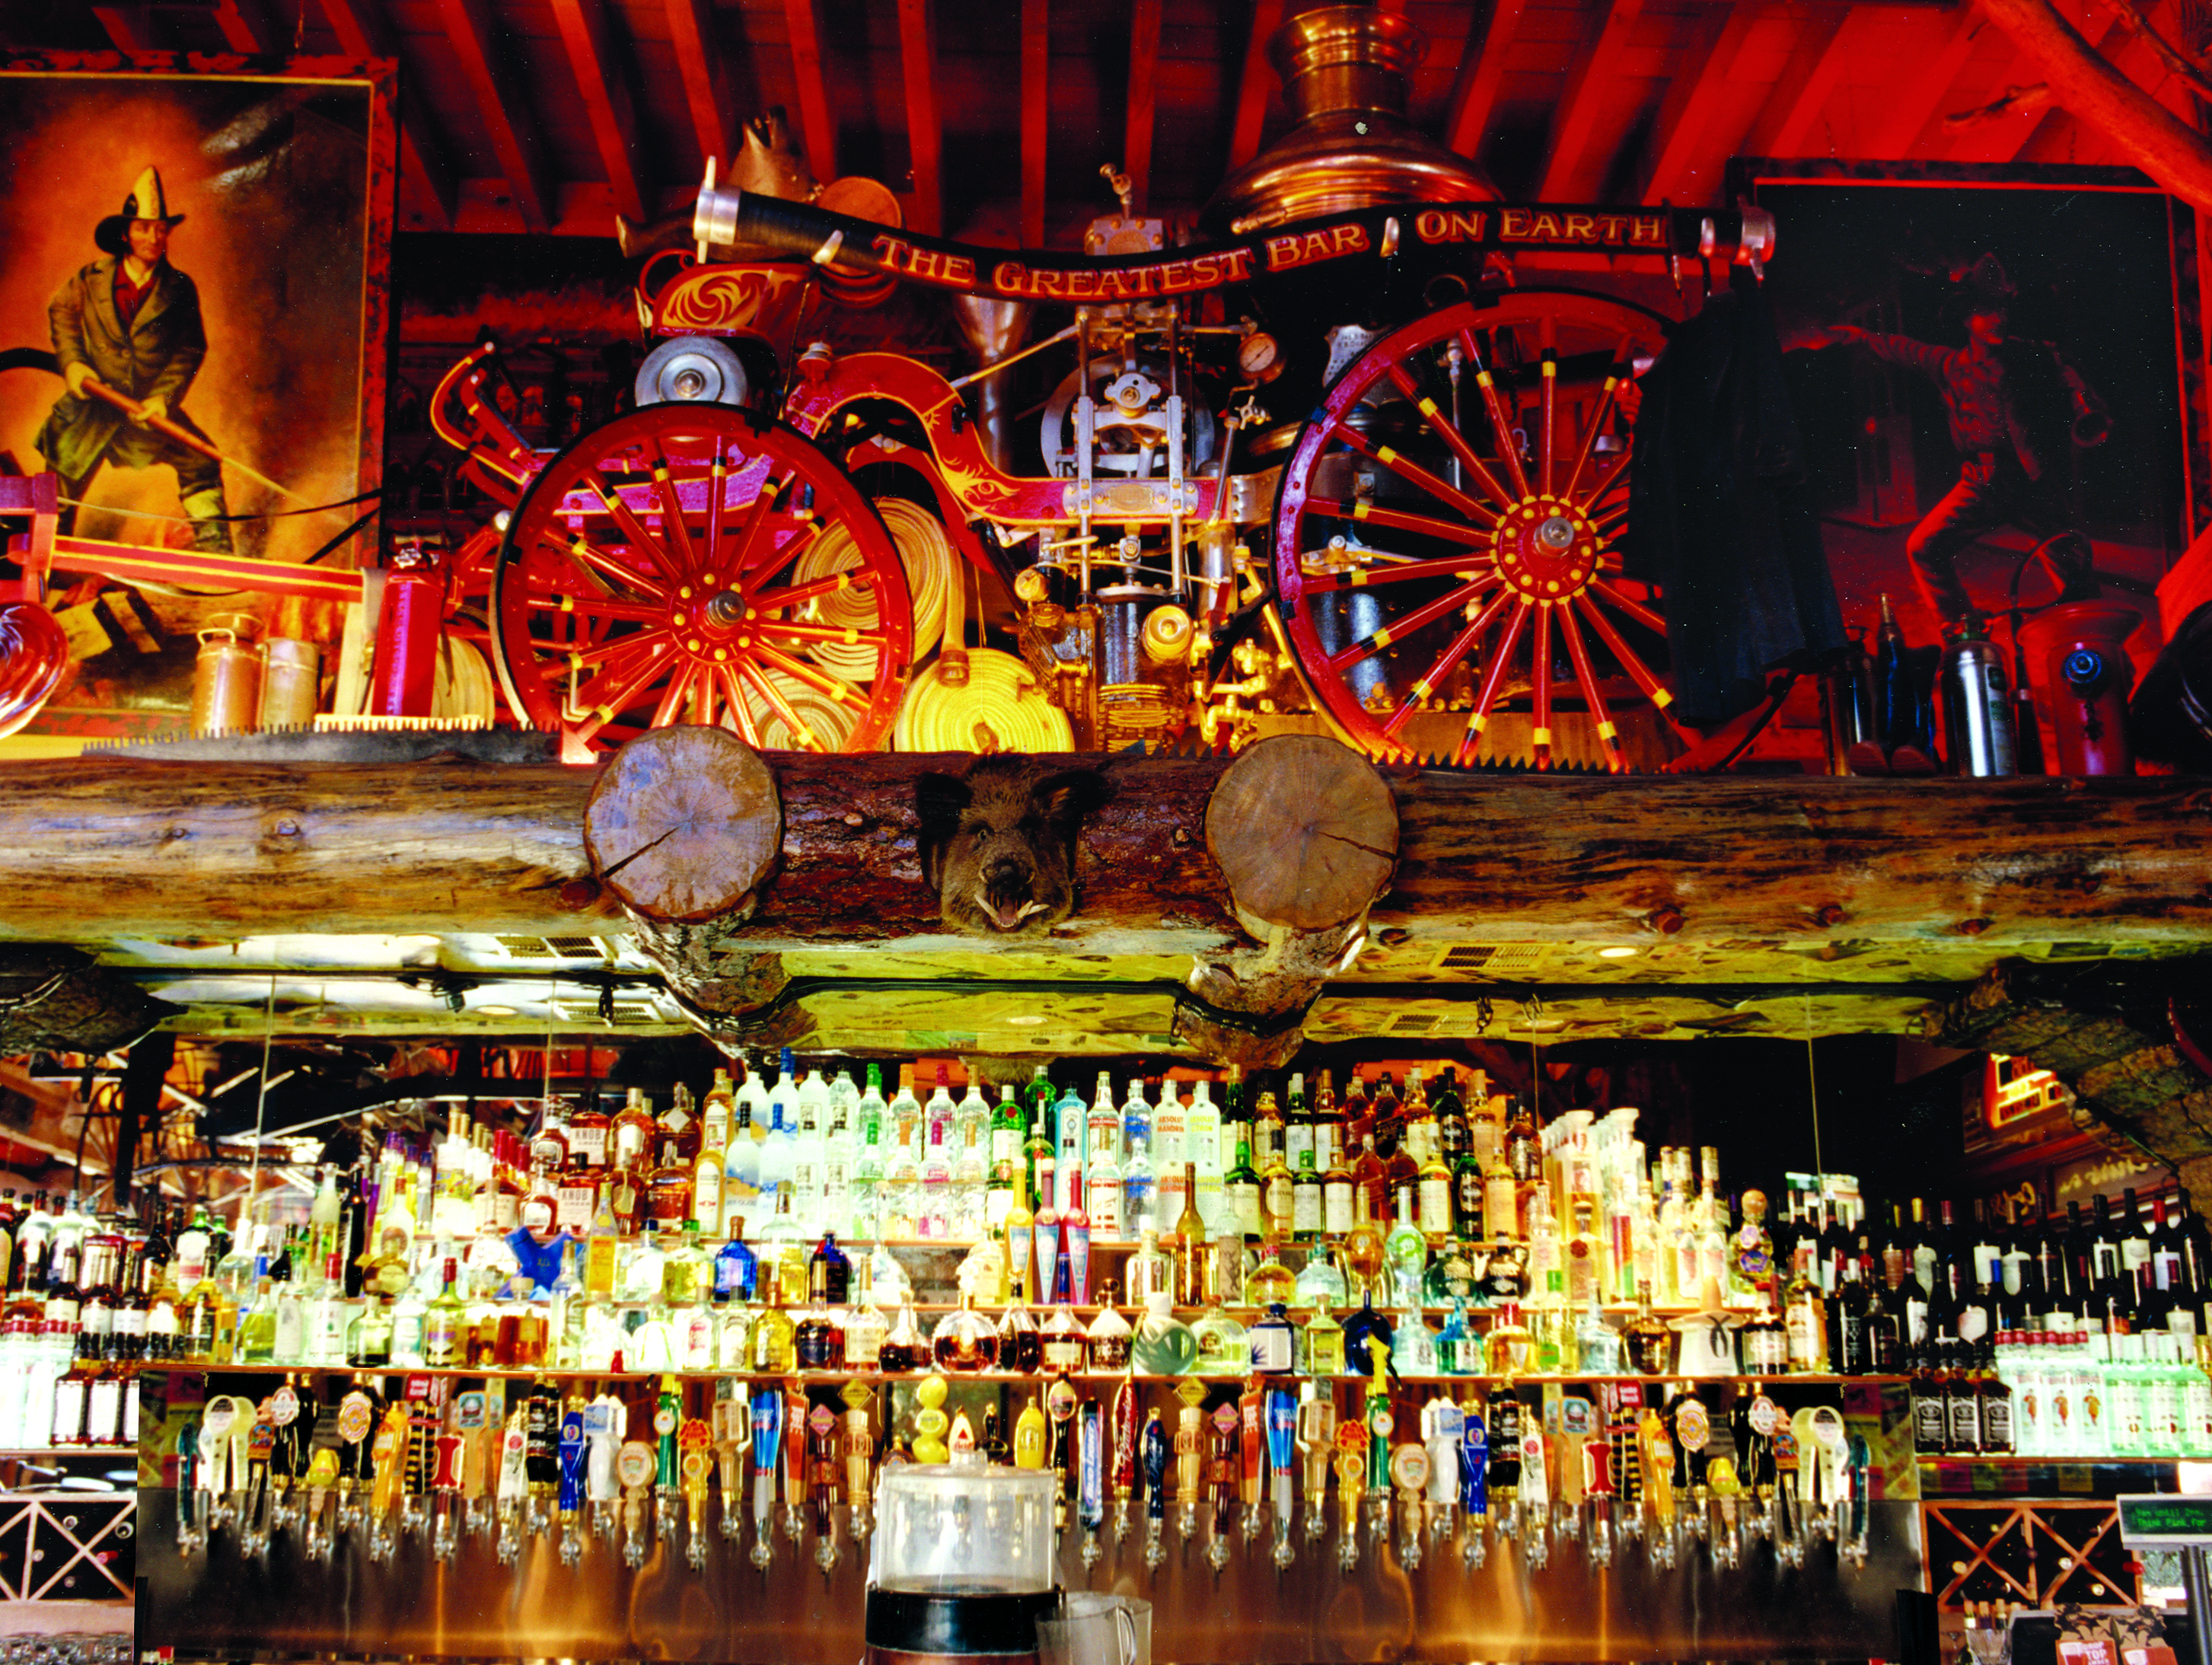 The Greatest Bar on Earth - Our Bar -The Greatest Bar on Earth- proudly features 101 different beers, 67 of the finest premium Tequilas in the world and wide assortment of other premium liquors.